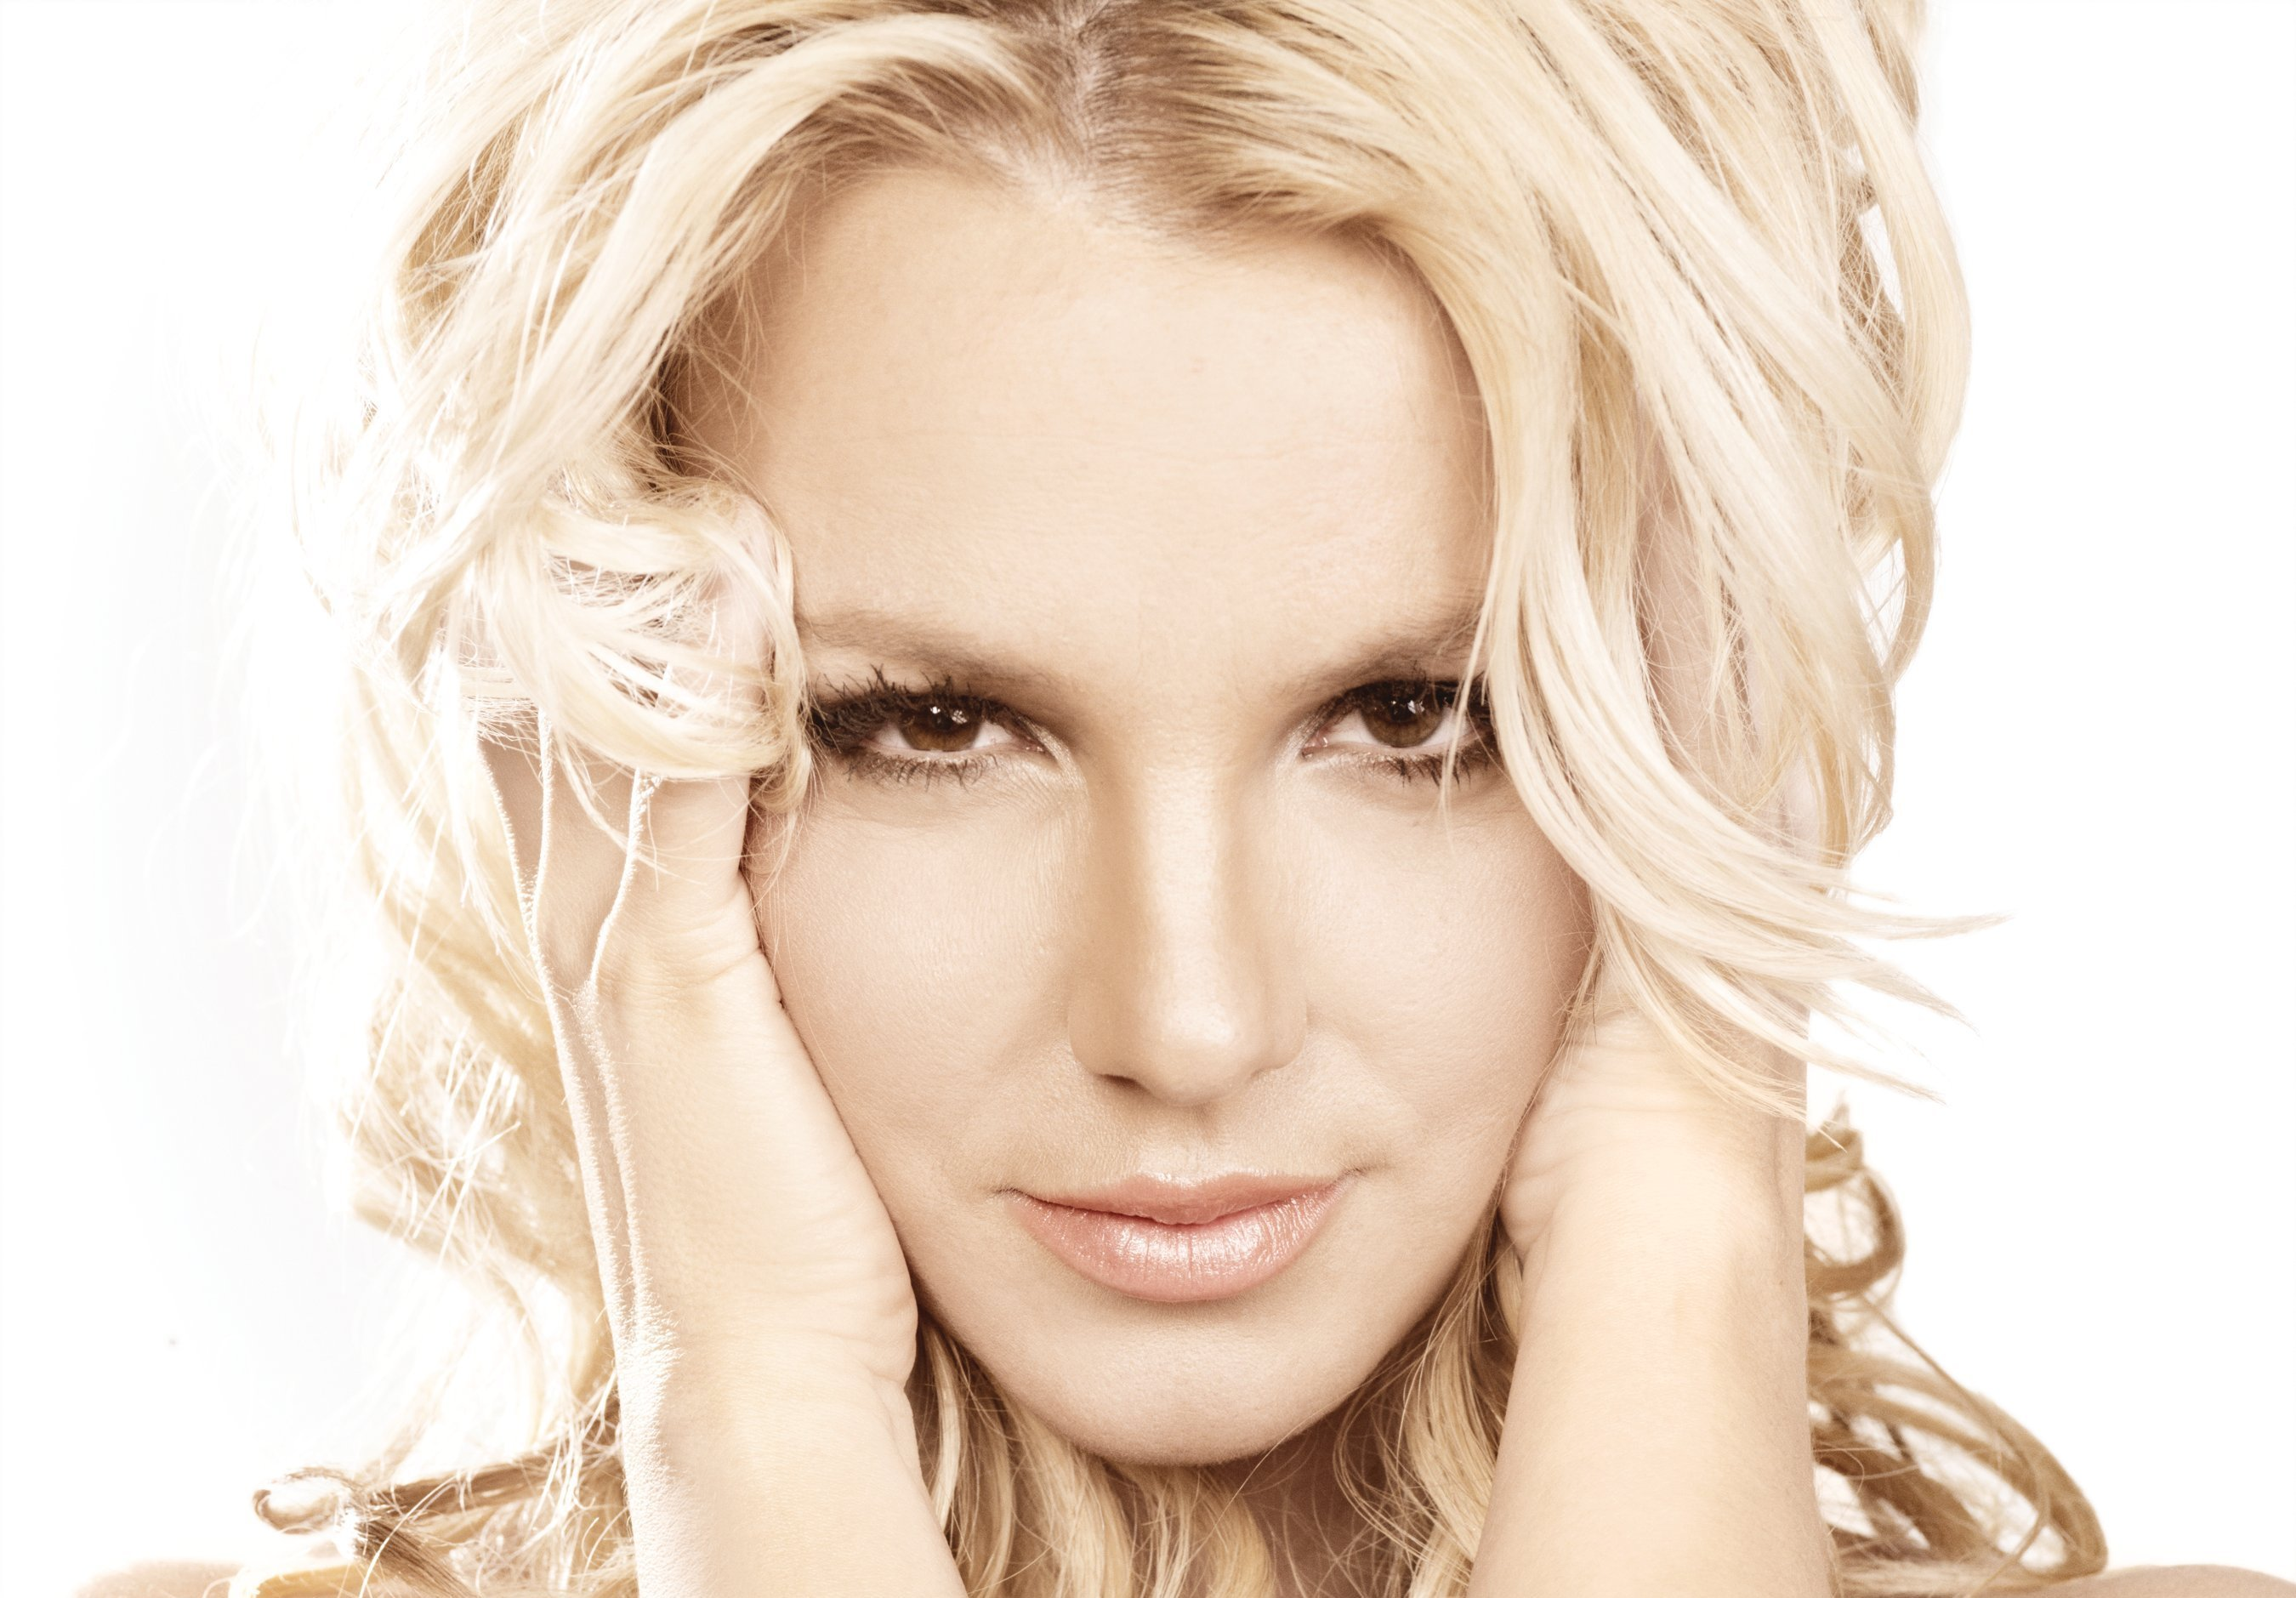 britney spears essay Immediately download the britney spears summary, chapter-by-chapter analysis, book notes, essays, quotes, character descriptions, lesson plans, and more - everything.